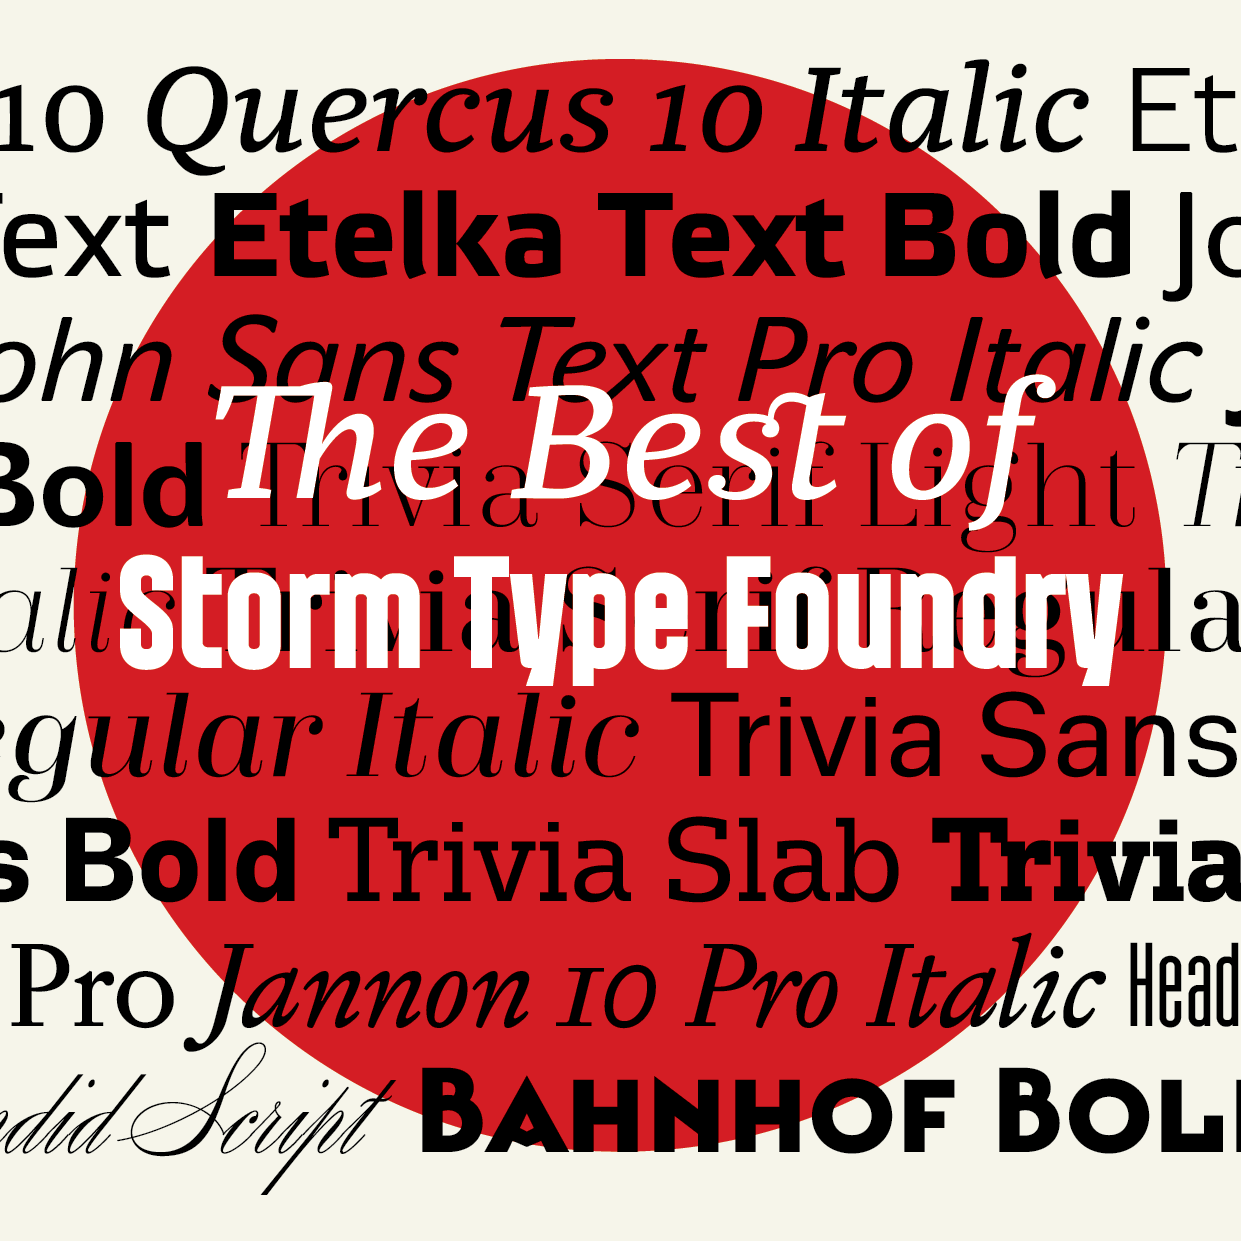 The Best of Storm Type Foundry